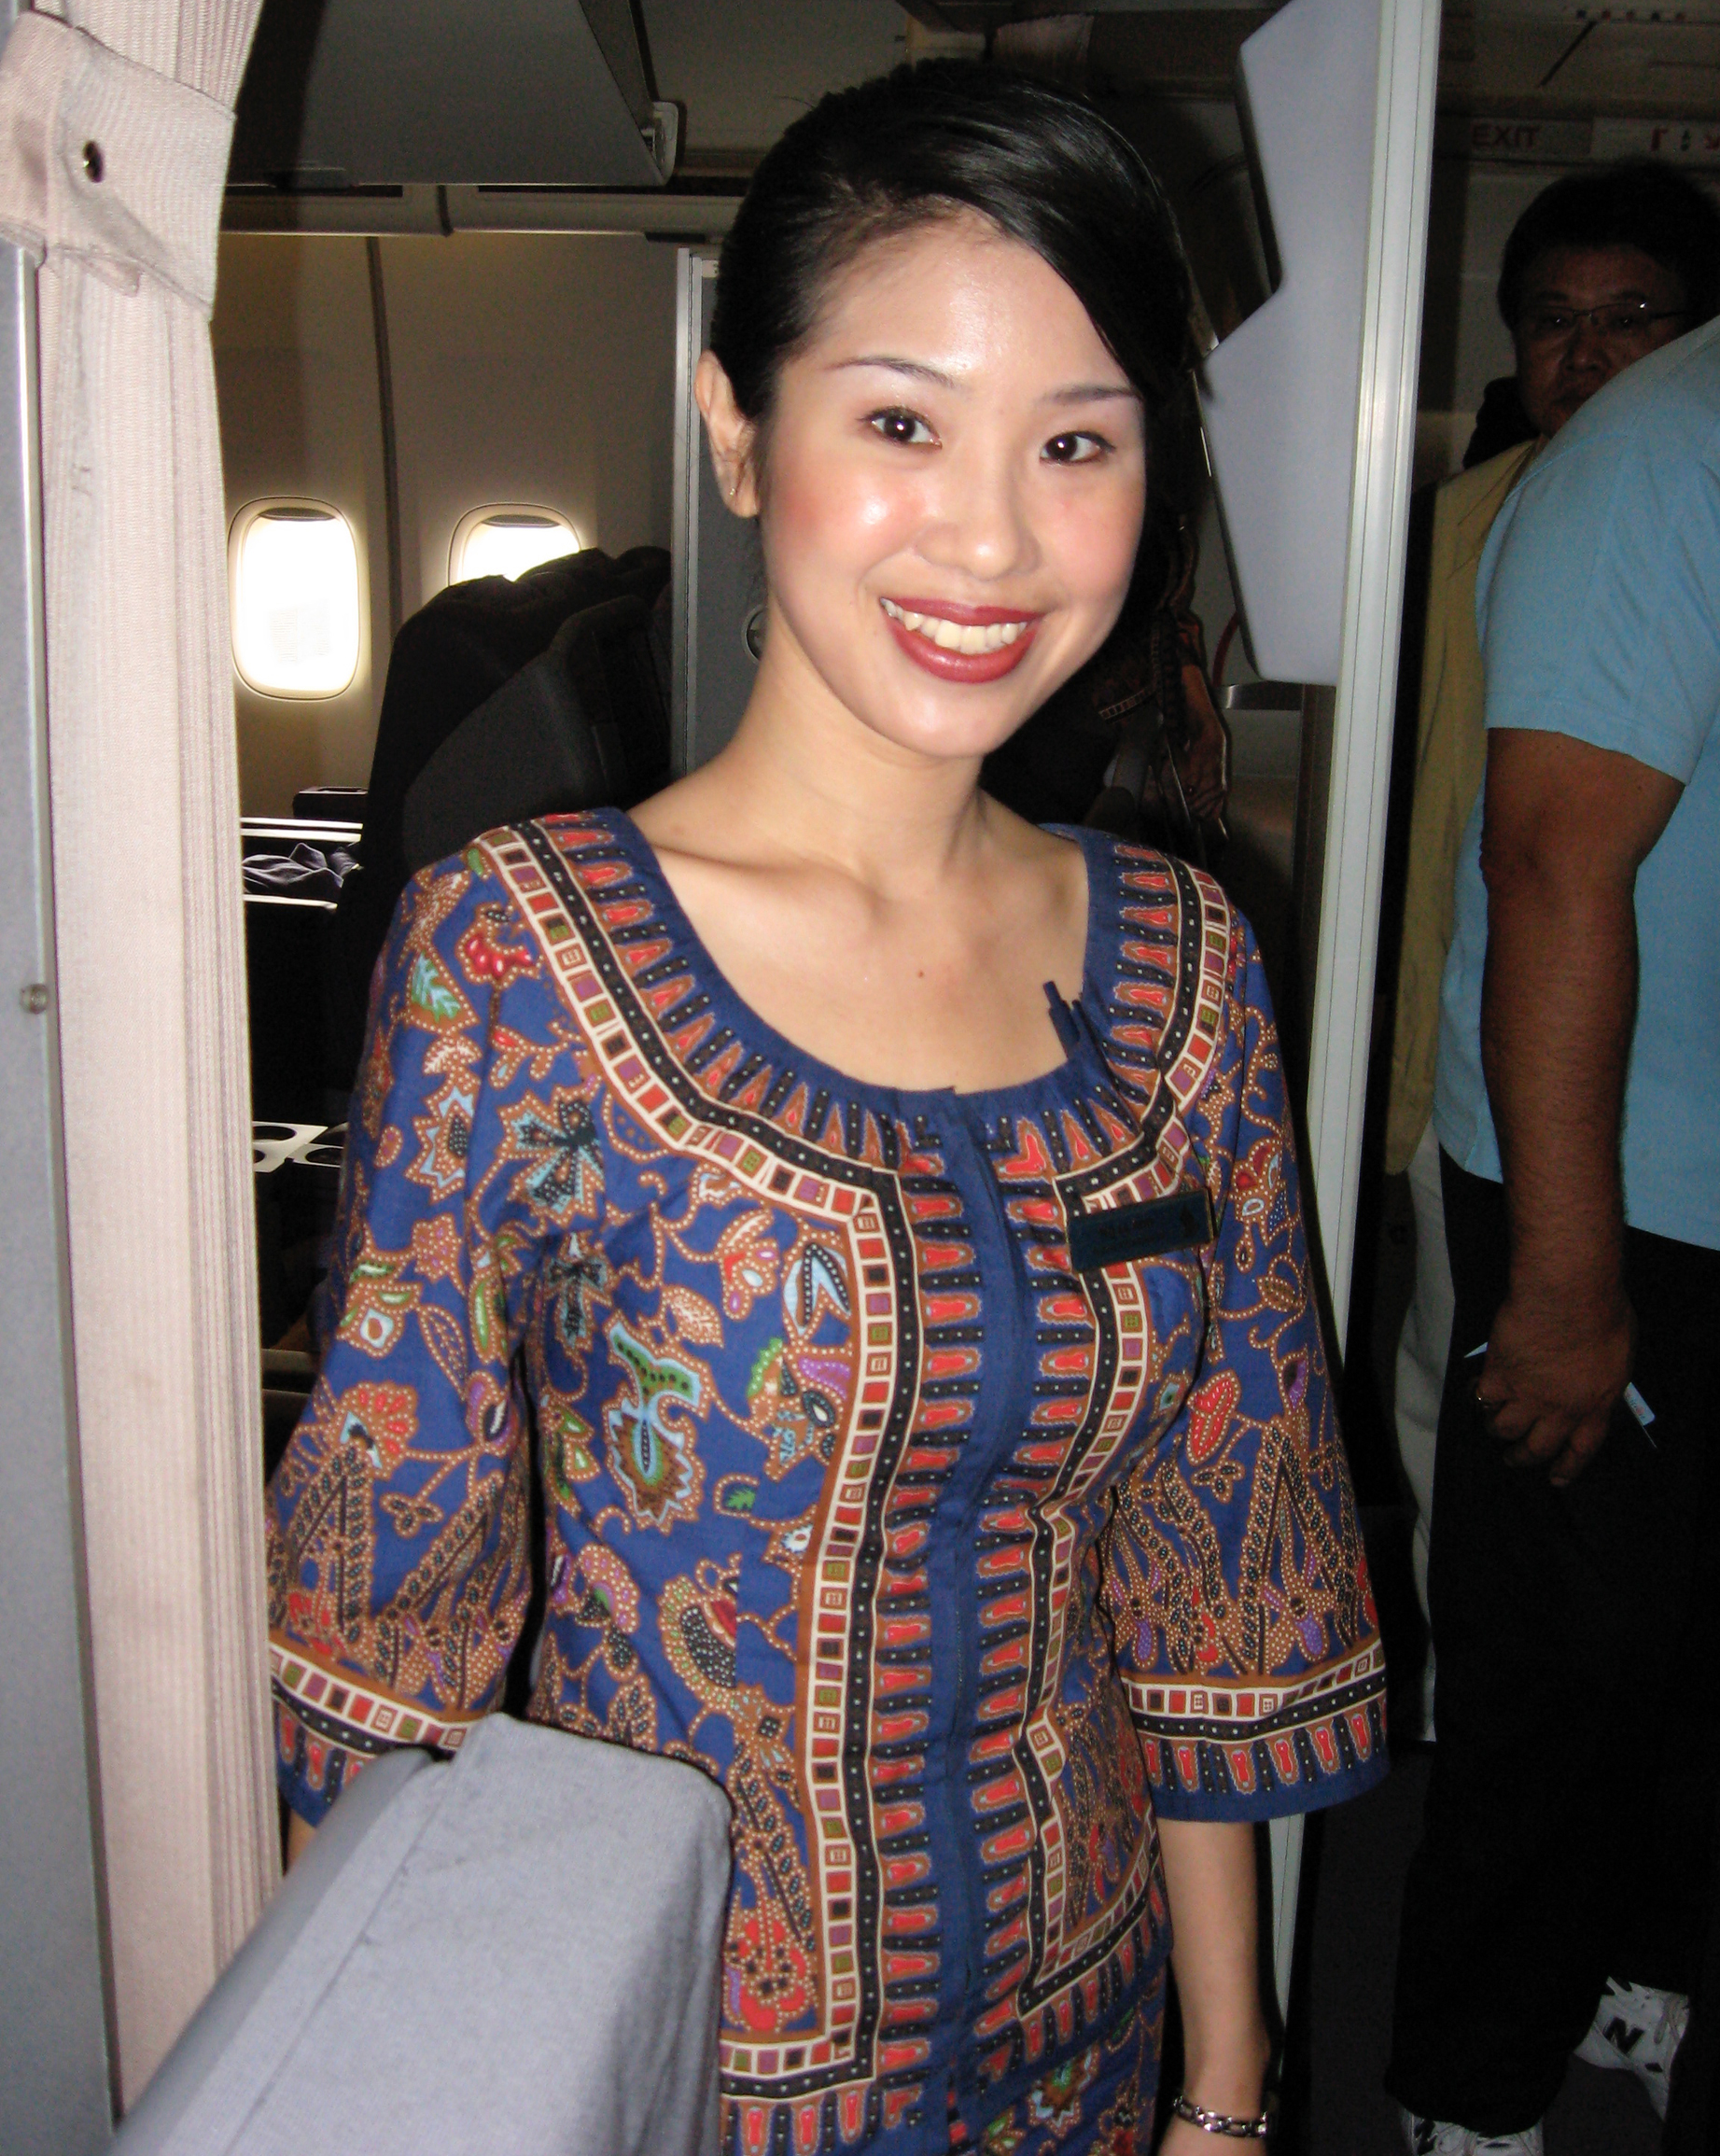 File:Singapore Airlines Hostess.jpg - Wikipedia, the free encyclopedia